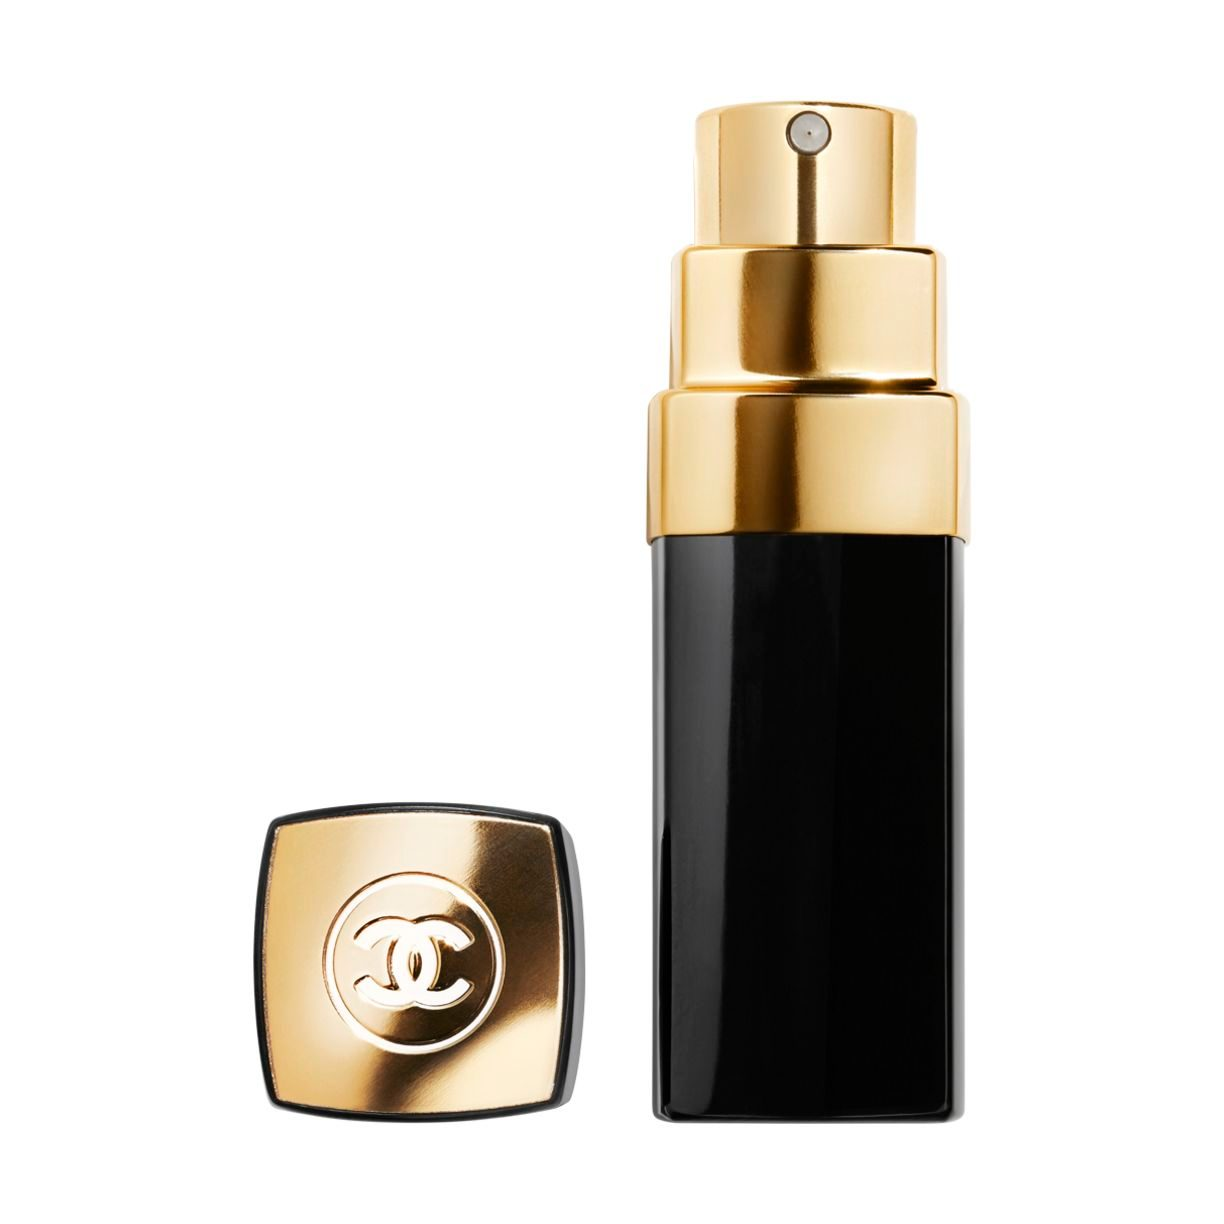 N°5 PARFUM PURSE SPRAY